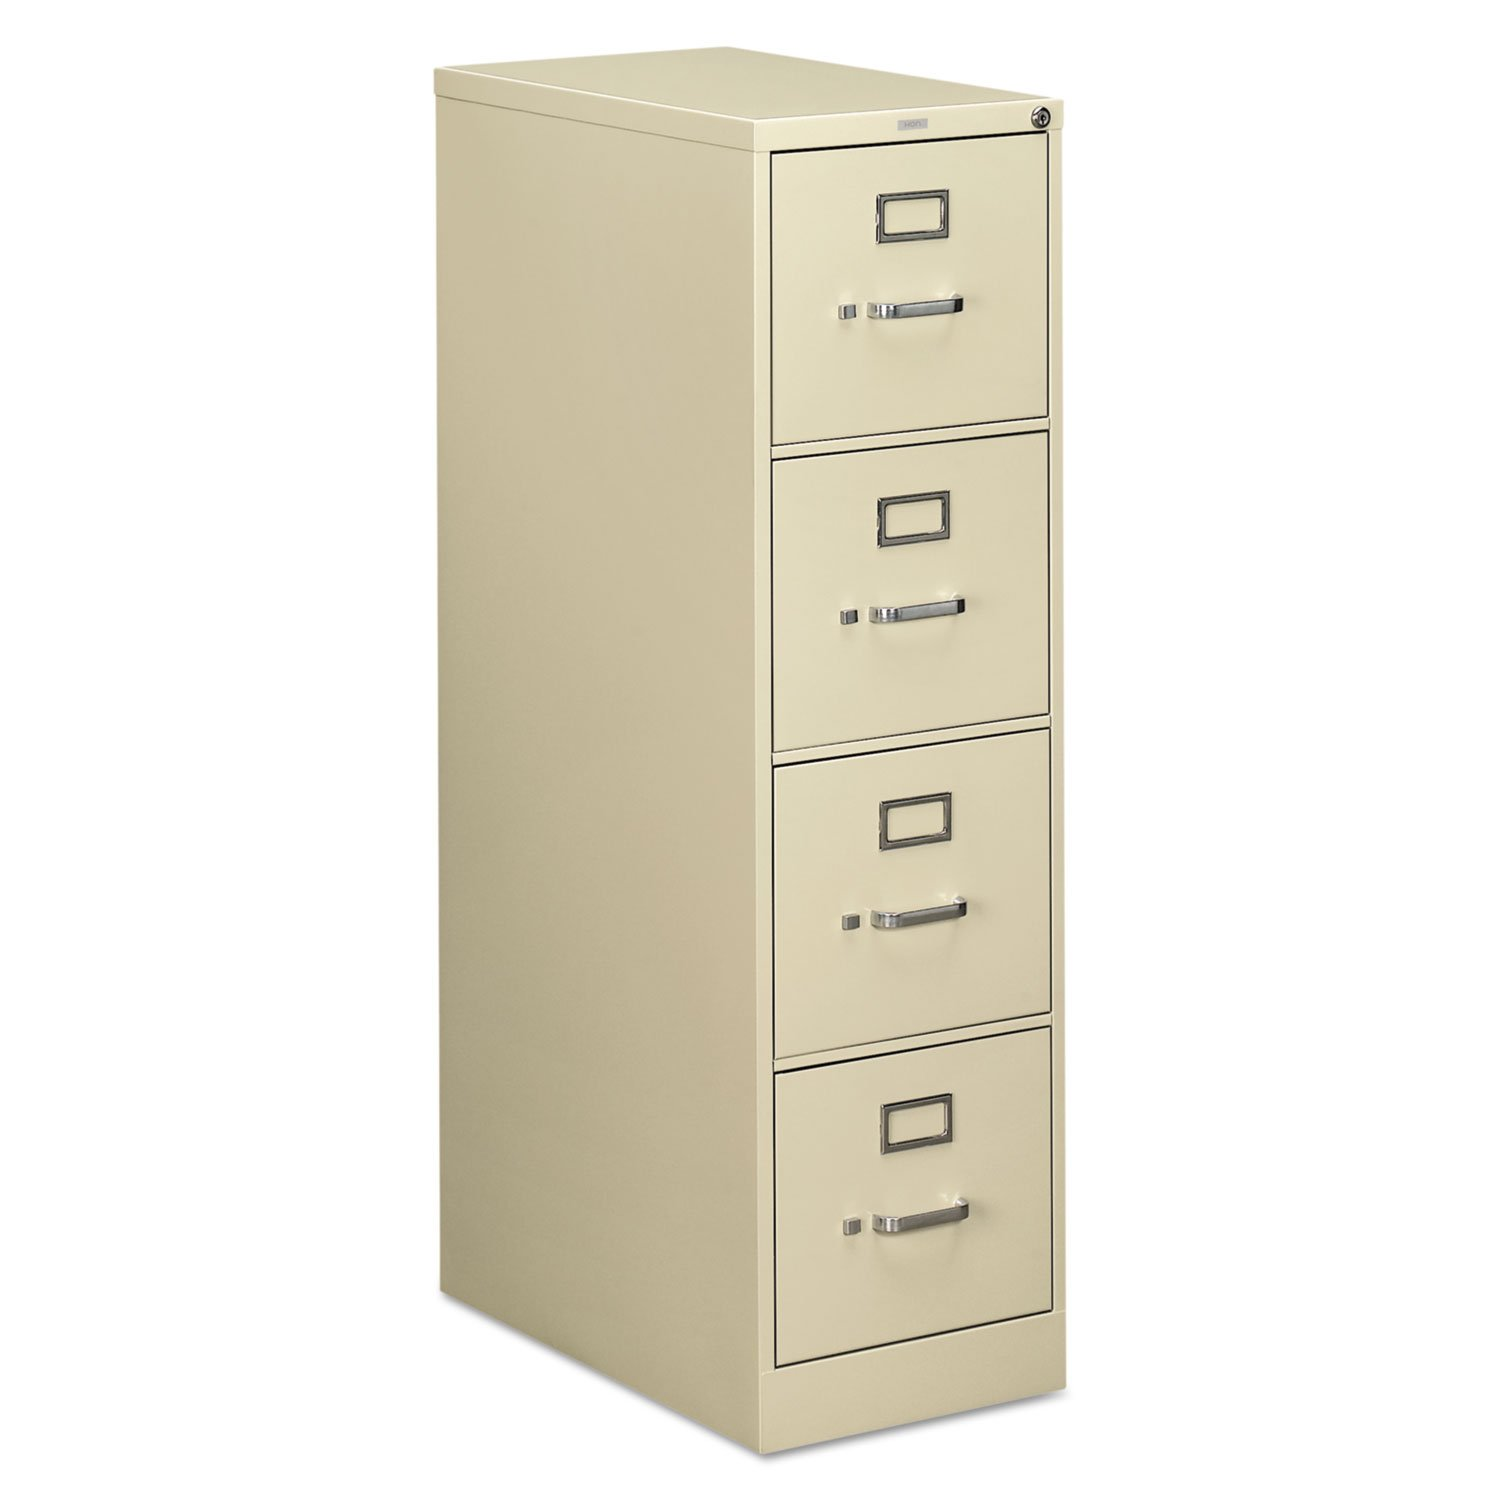 HON 514PL Vertical File With Lock - 15amp;quot; x 25amp;quot; x 52amp;quot; - Steel - 4 x File Drawer(s) - Letter - Security Lock - Putty